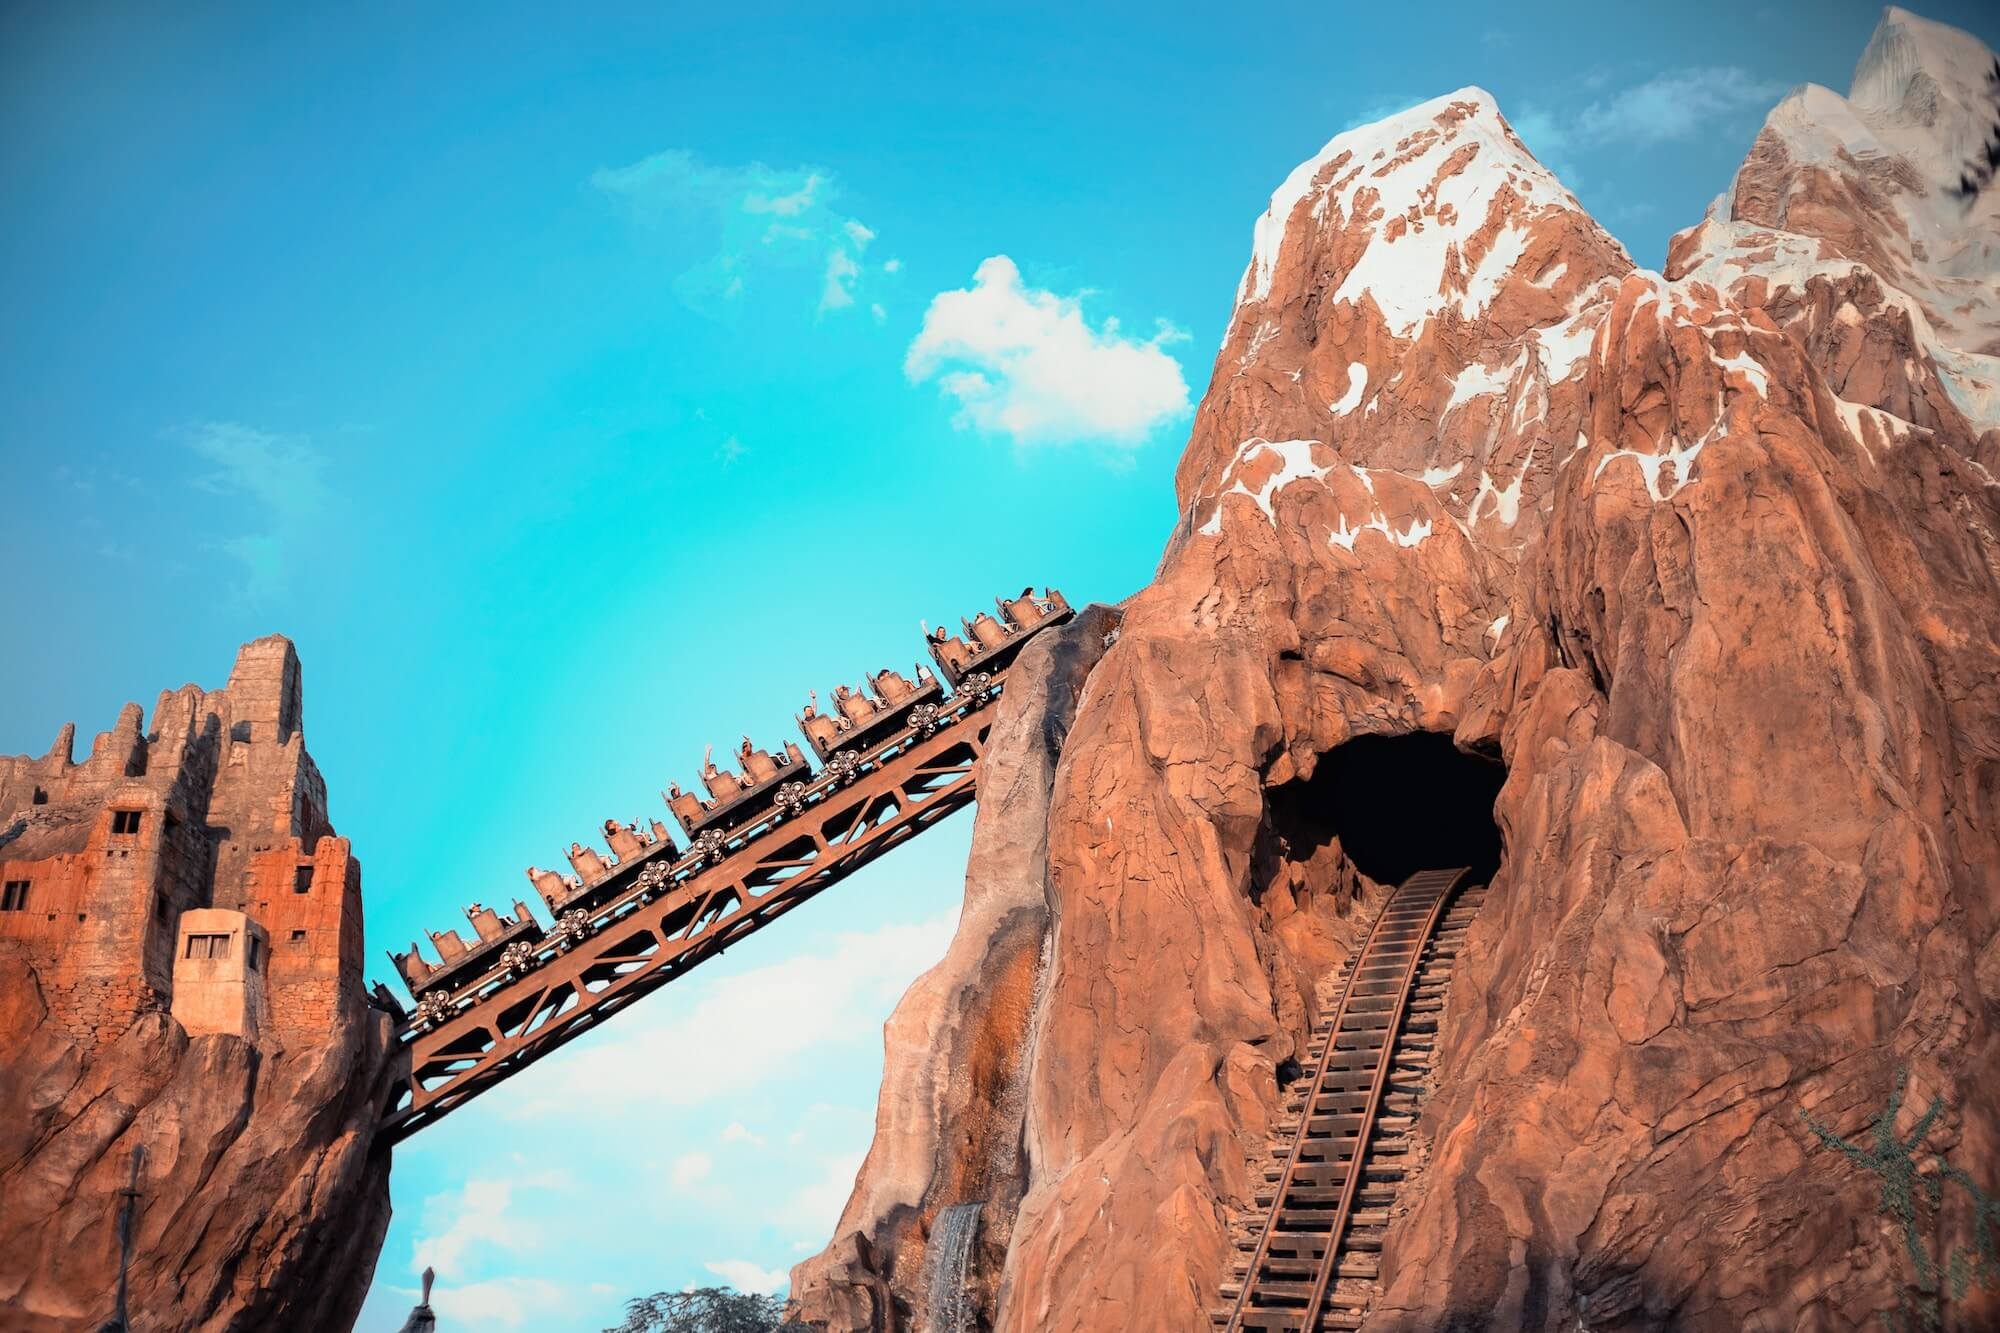 Expedition Everest at Disney Orlando